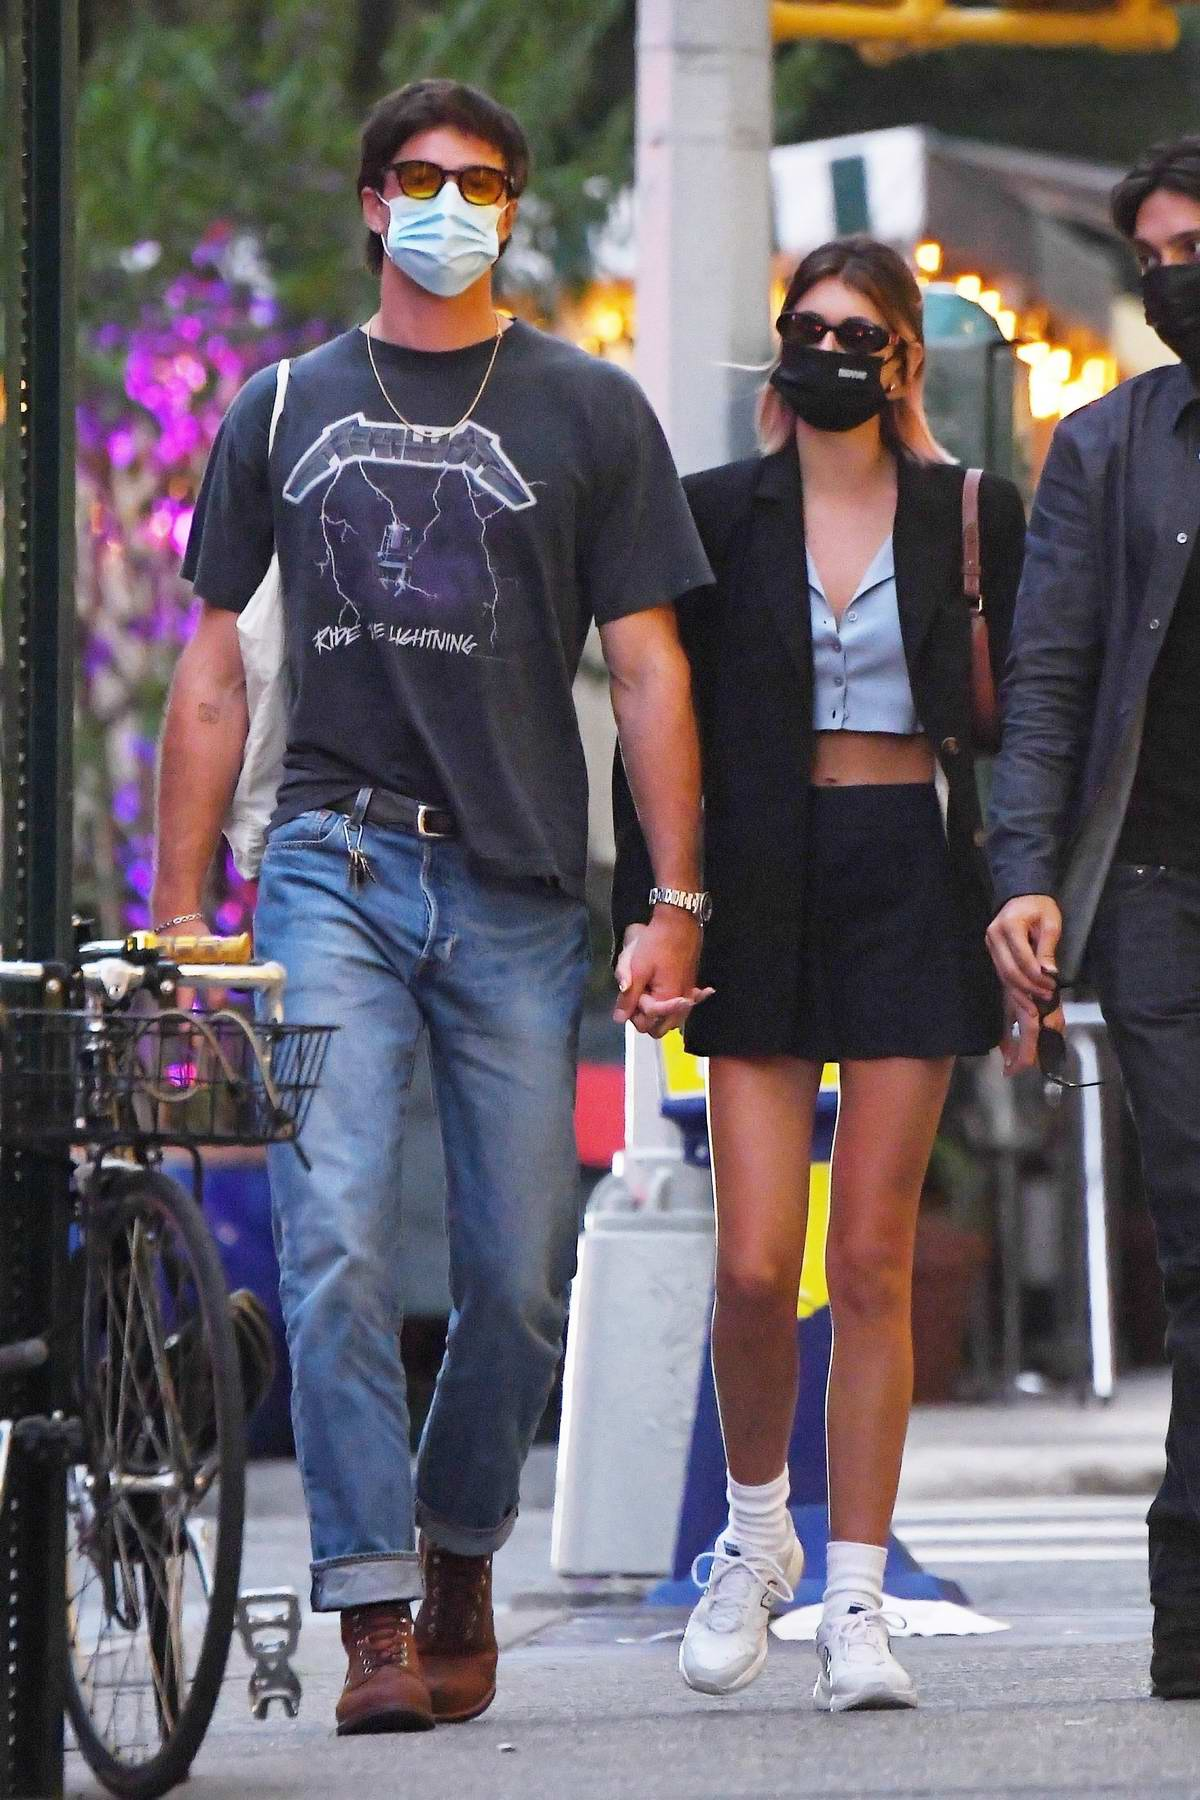 Kaia Gerber and Jacob Elordi hold hands as they walk to her apartment after a date night in New York City